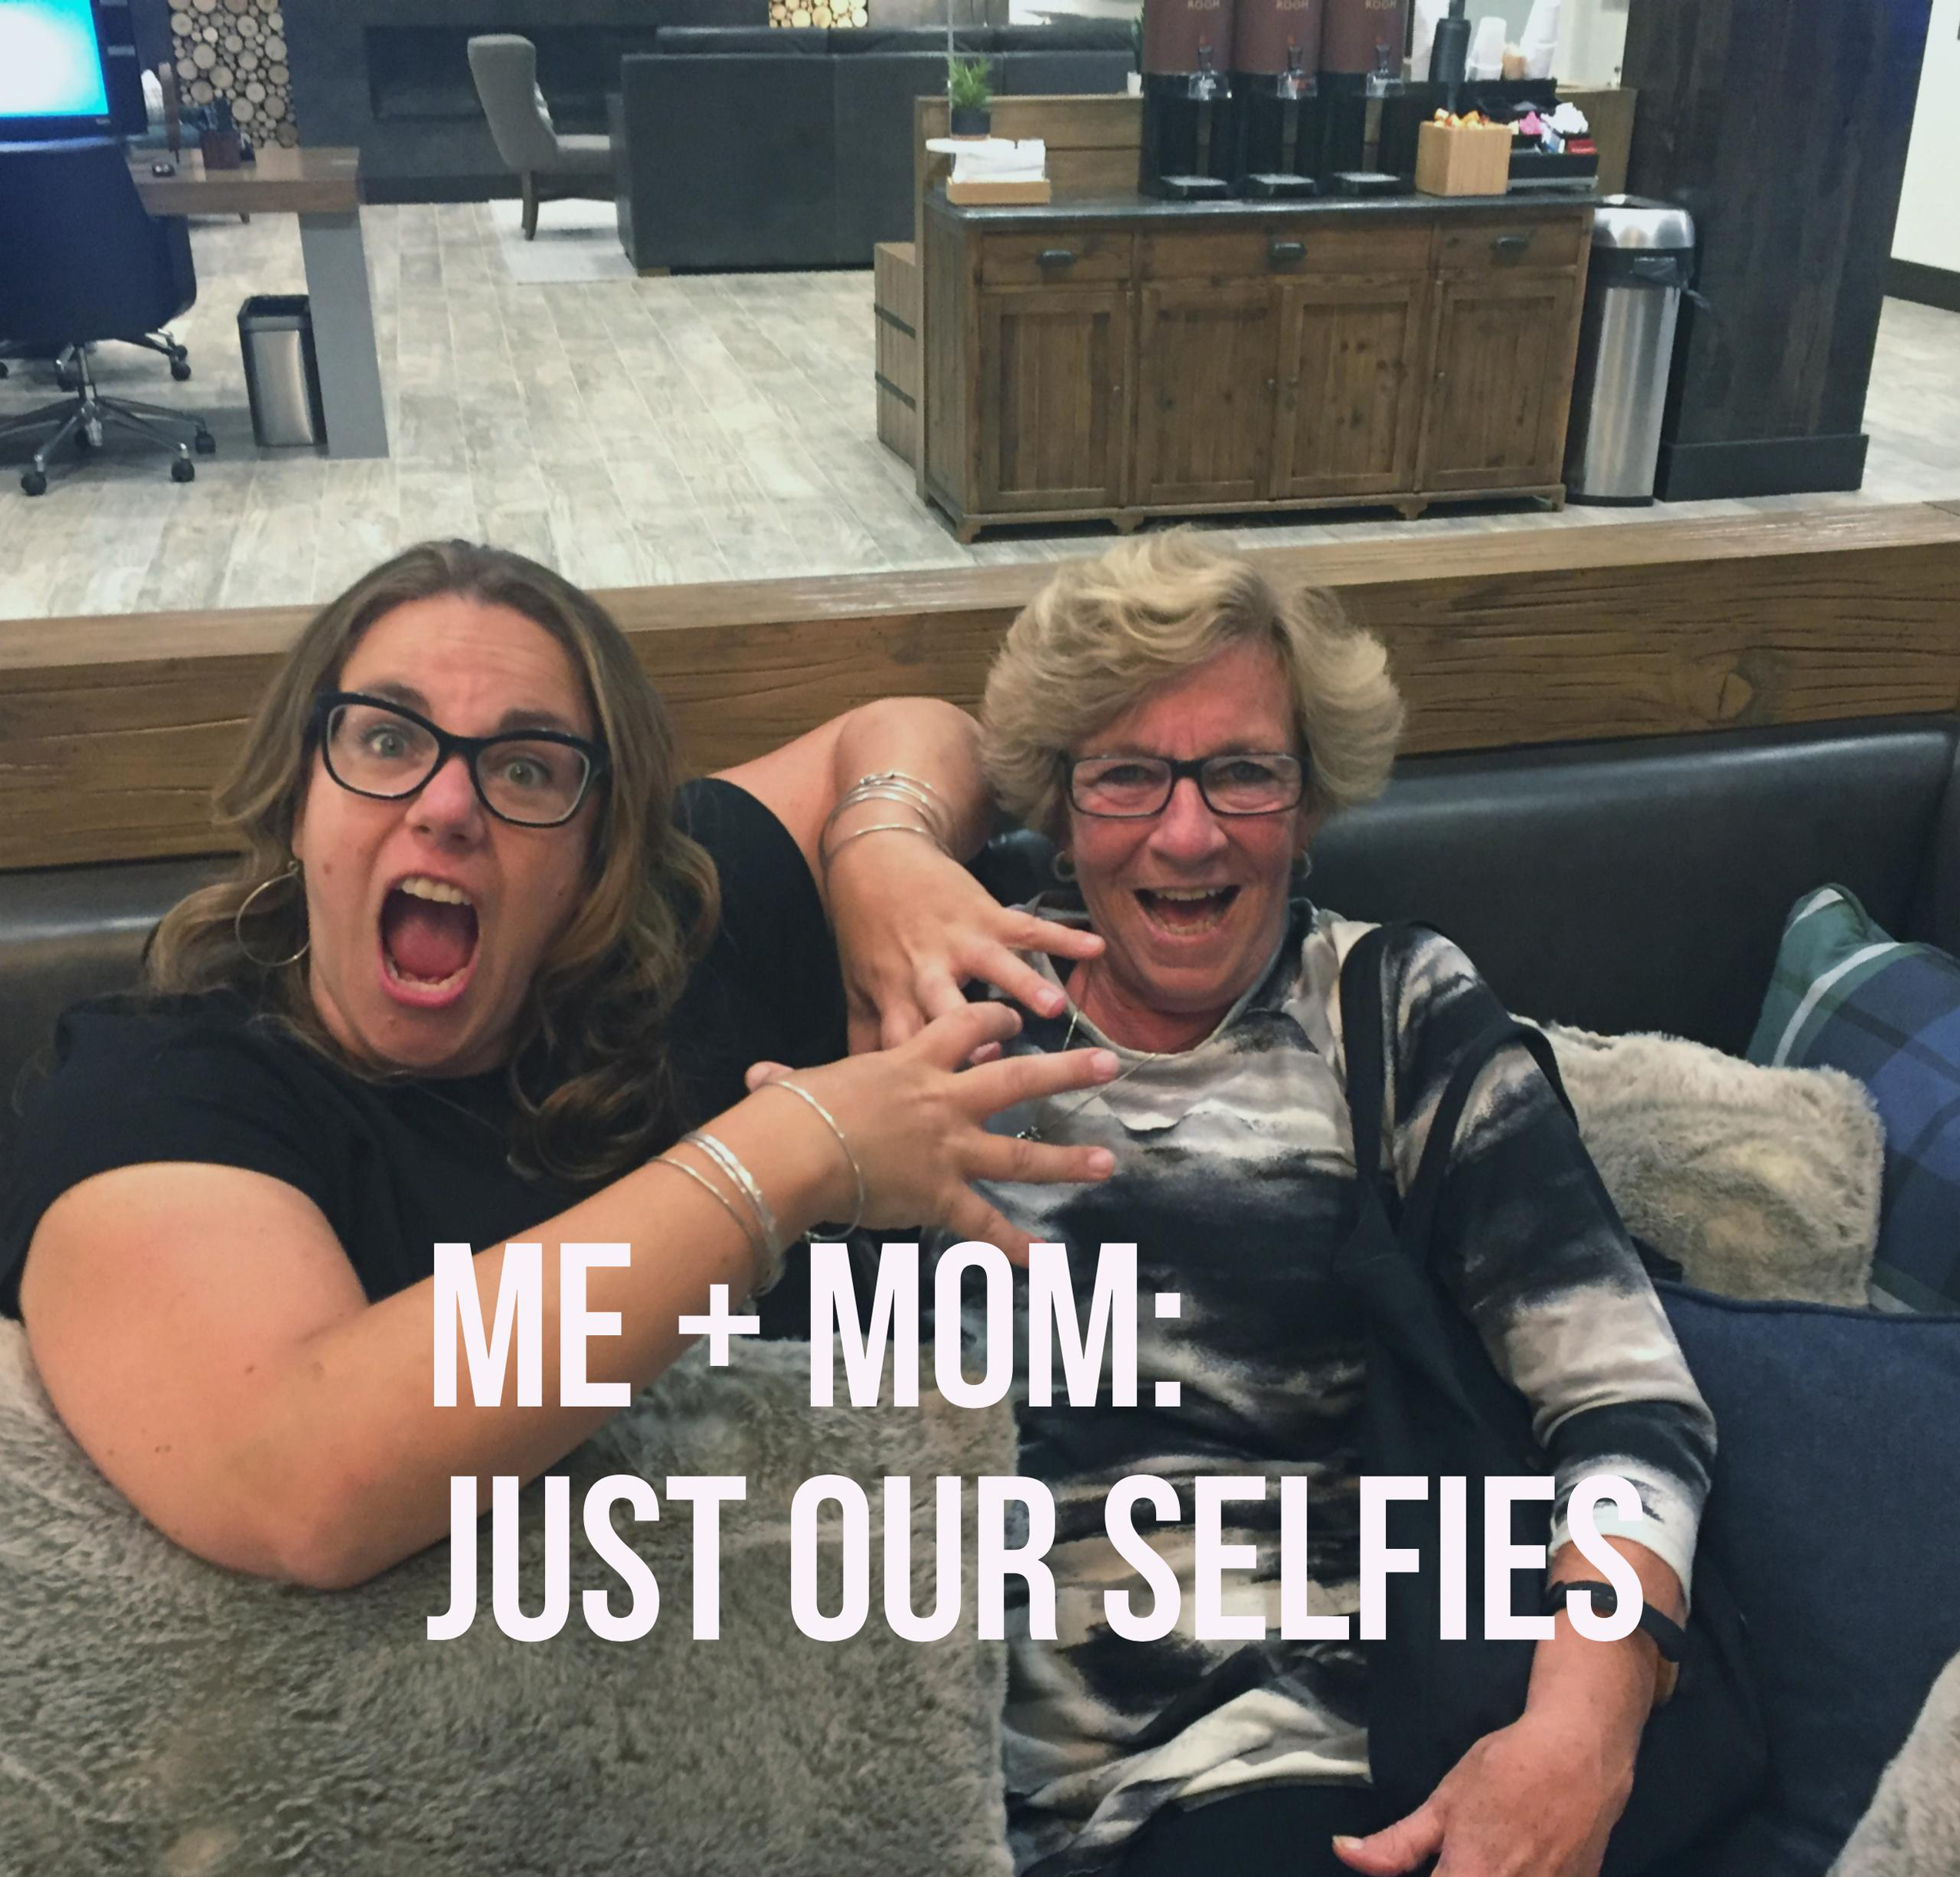 Me + Mom: Self Portraiture (ok, selfies) Gone Awry